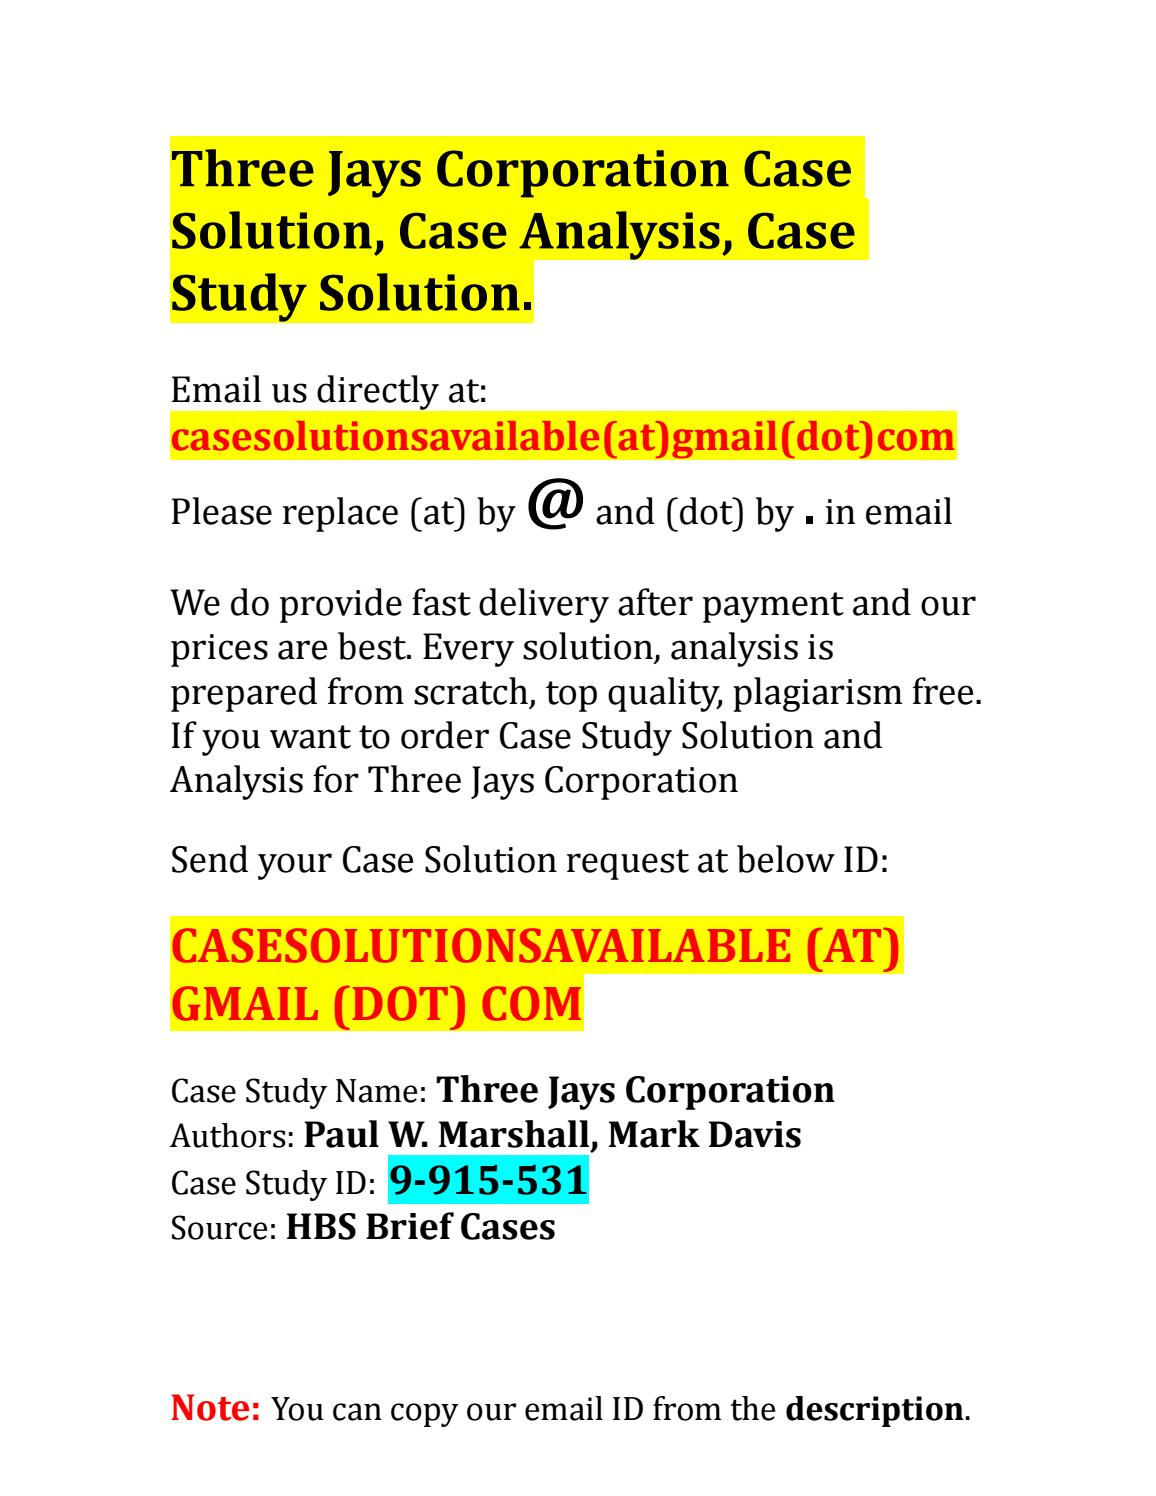 Case Study Solutions   Case Study Analyses  Intuit Management Consultancy www intuitconsultancy com Case Study    Outsourcing Solution for Accounting Introduction